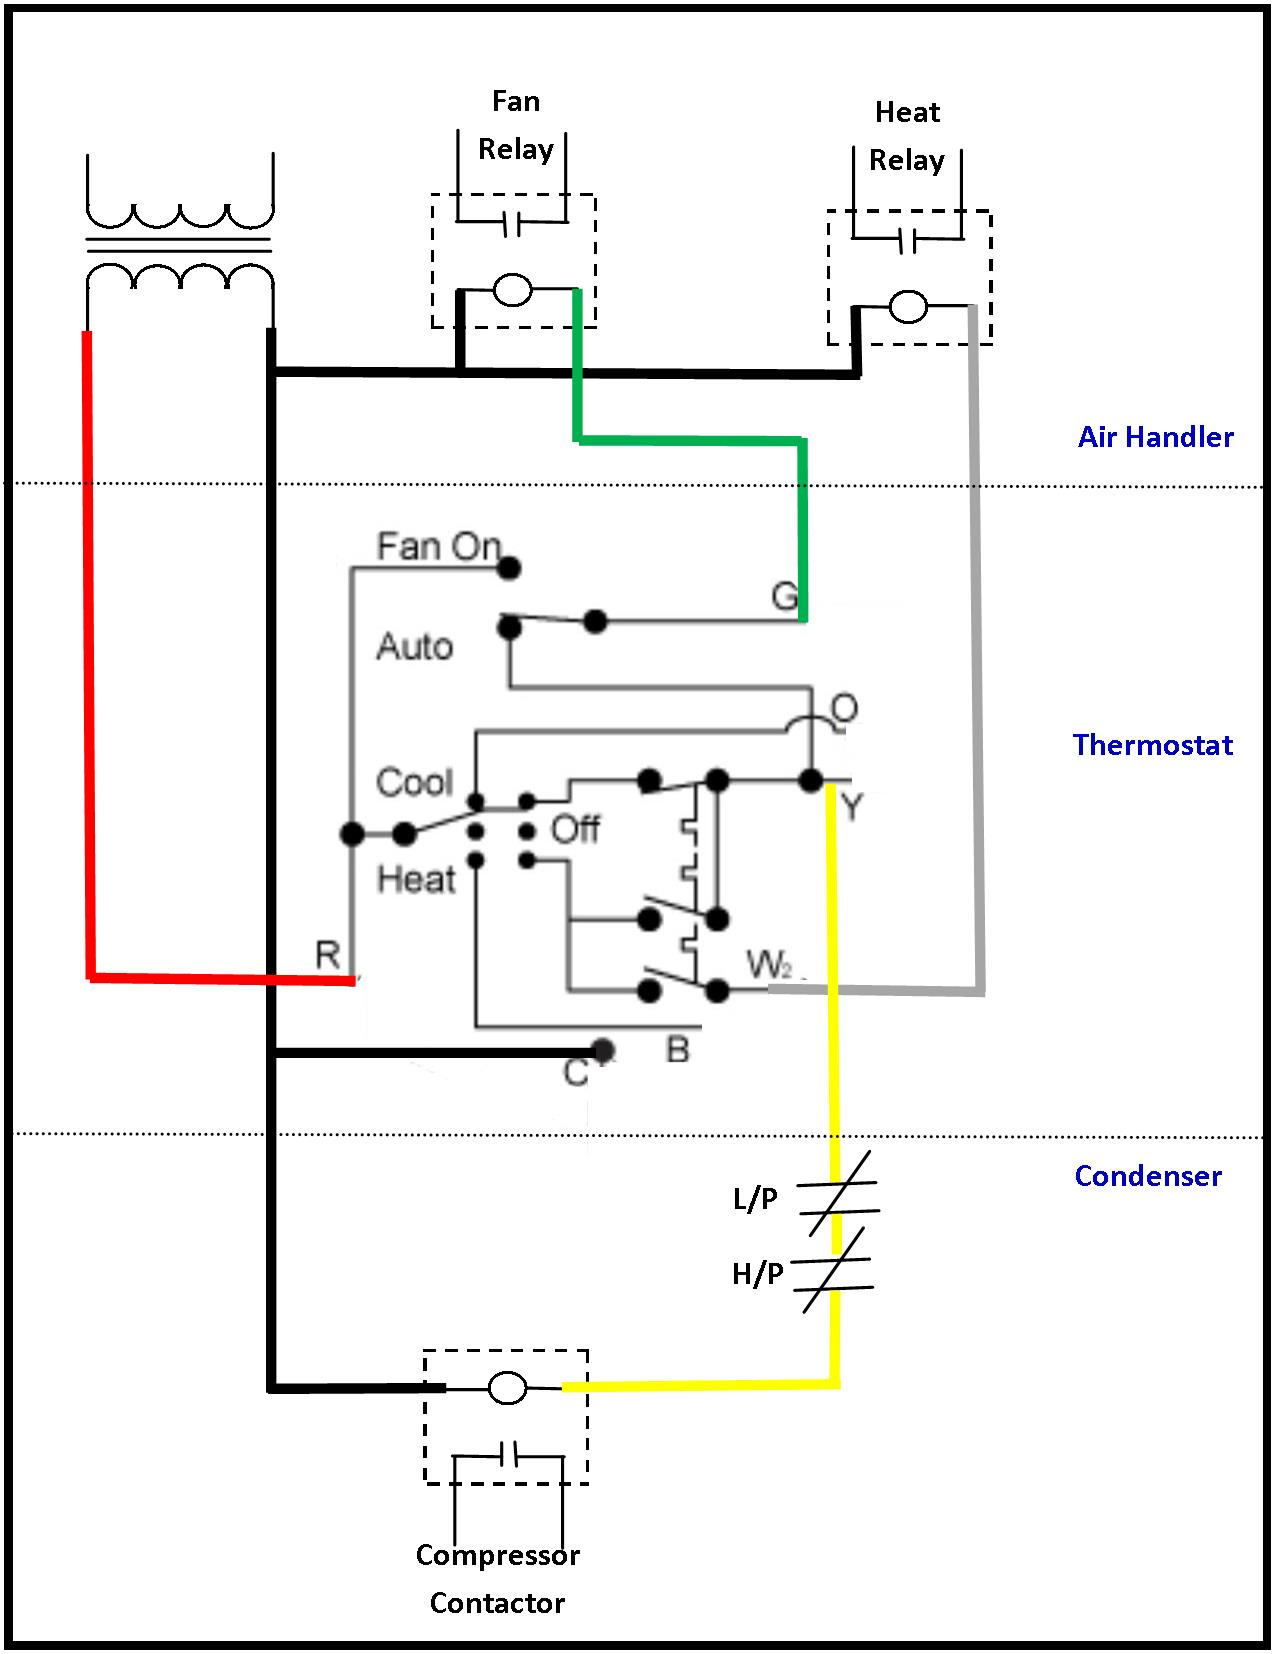 AC low voltage wiring diagram1 hvac wire diagram hvac diagrams schematics \u2022 wiring diagrams j Low Voltage Wiring Guide at nearapp.co